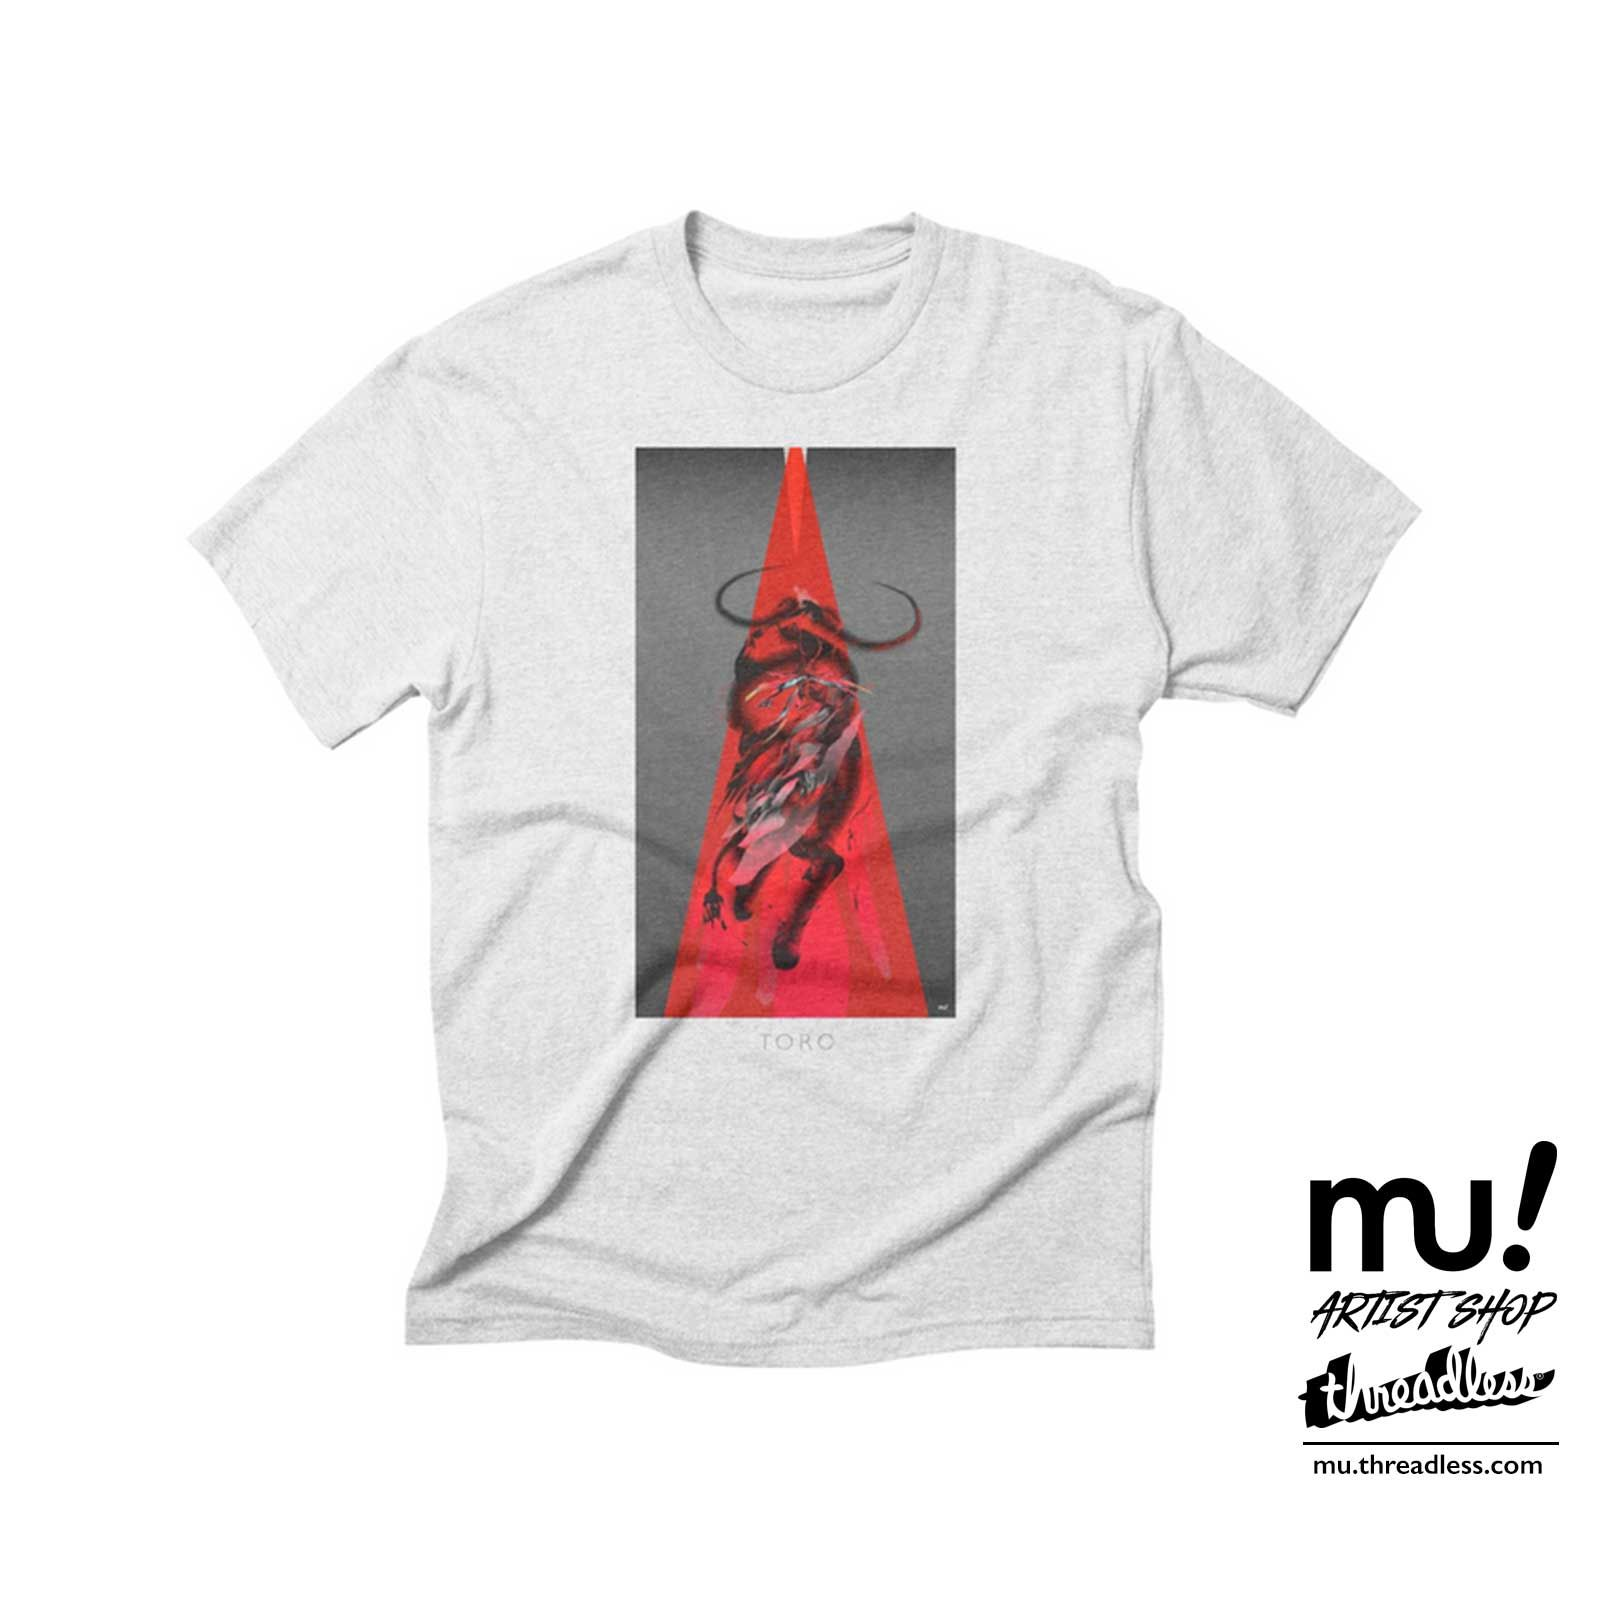 bullfighting-toros-tauromaquia-spain-mu-studio-sebastian-murra-abstract-vector-illustration-threadless-artist-shop